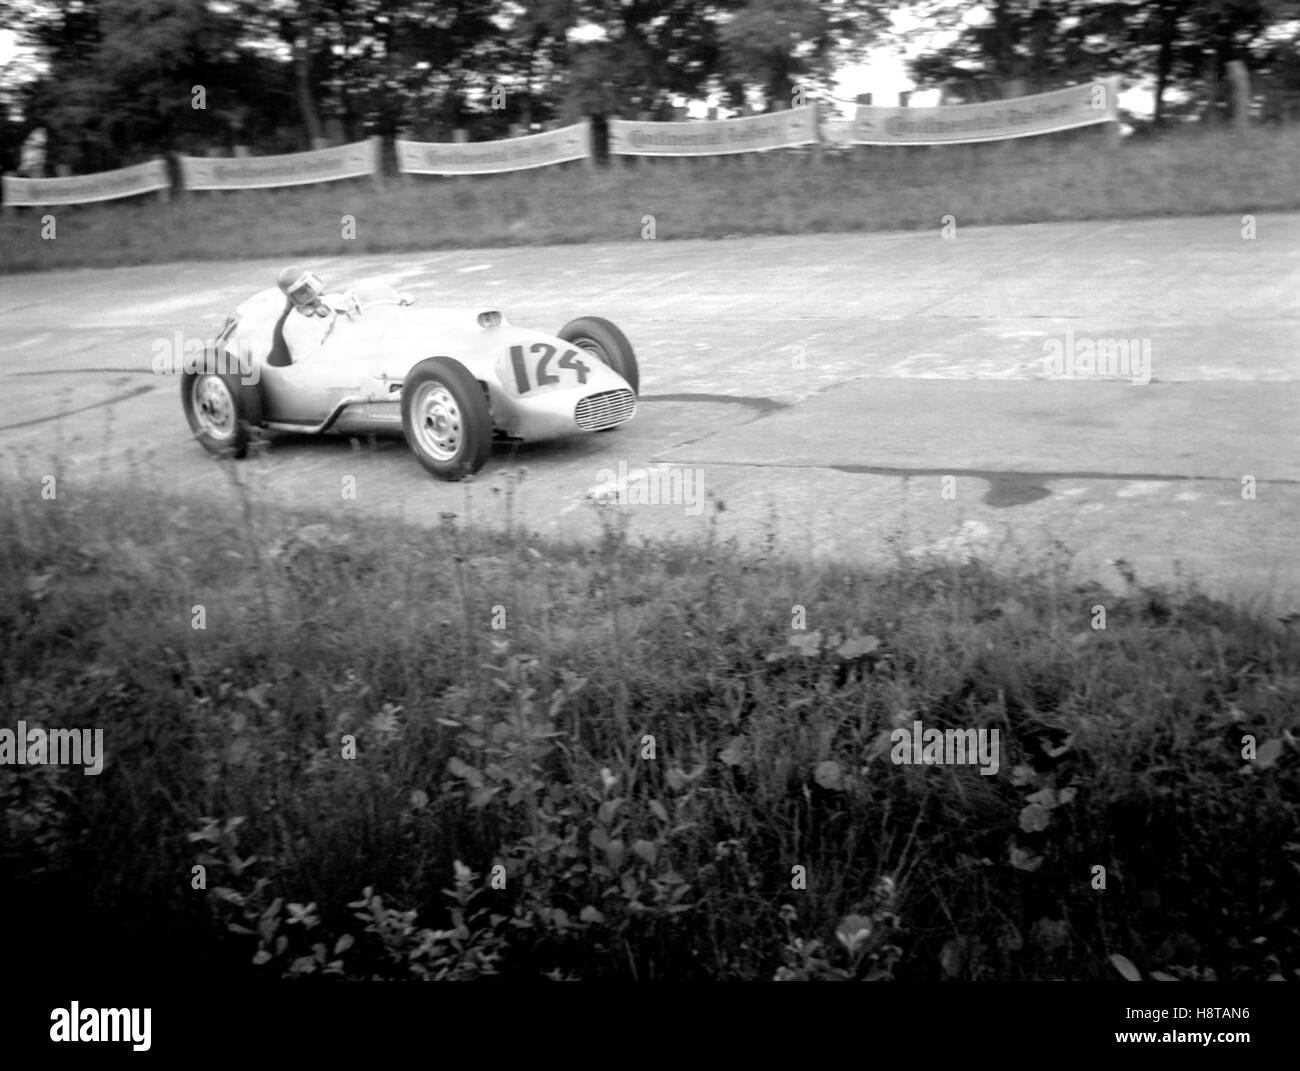 1952 GERMAN GP NIEDERMAYR AFM BMW - Stock Image